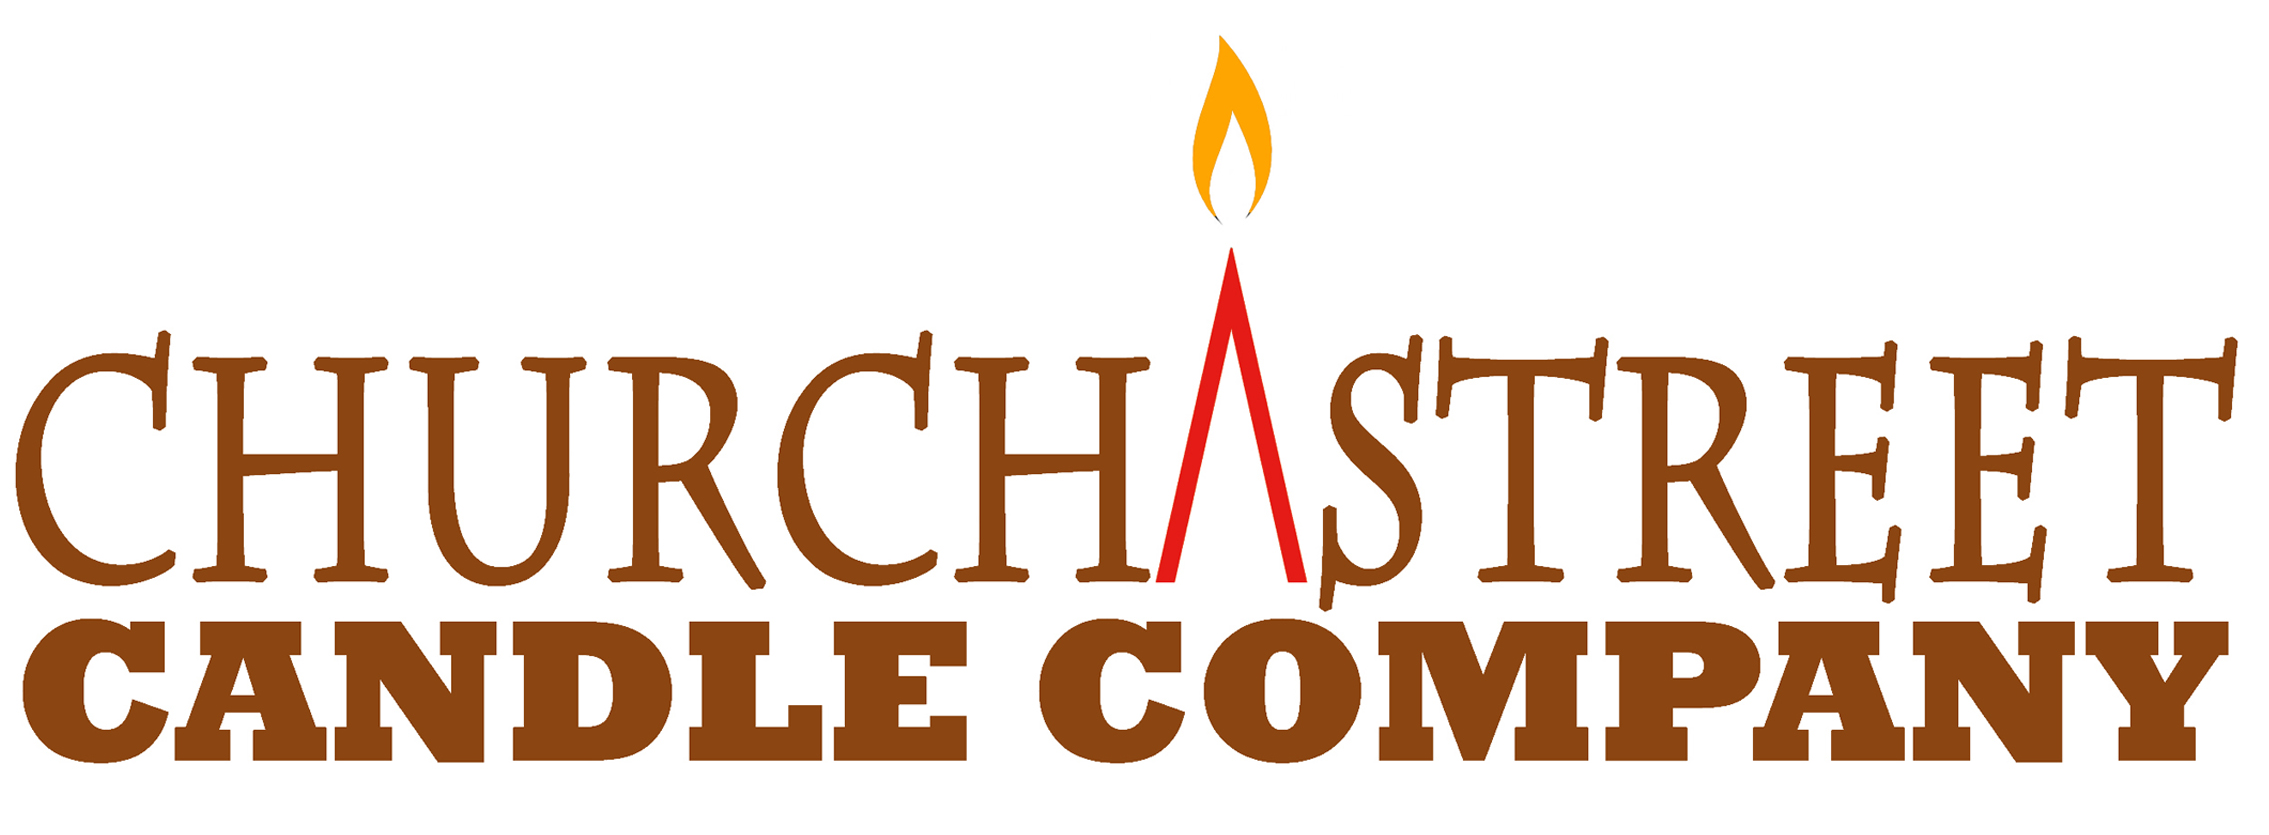 Church Street Candle Company , 445 Church Street SE, in The Old Woolen Mill, hand-poured soy and soy-blend candles, and Himalayan salt products.